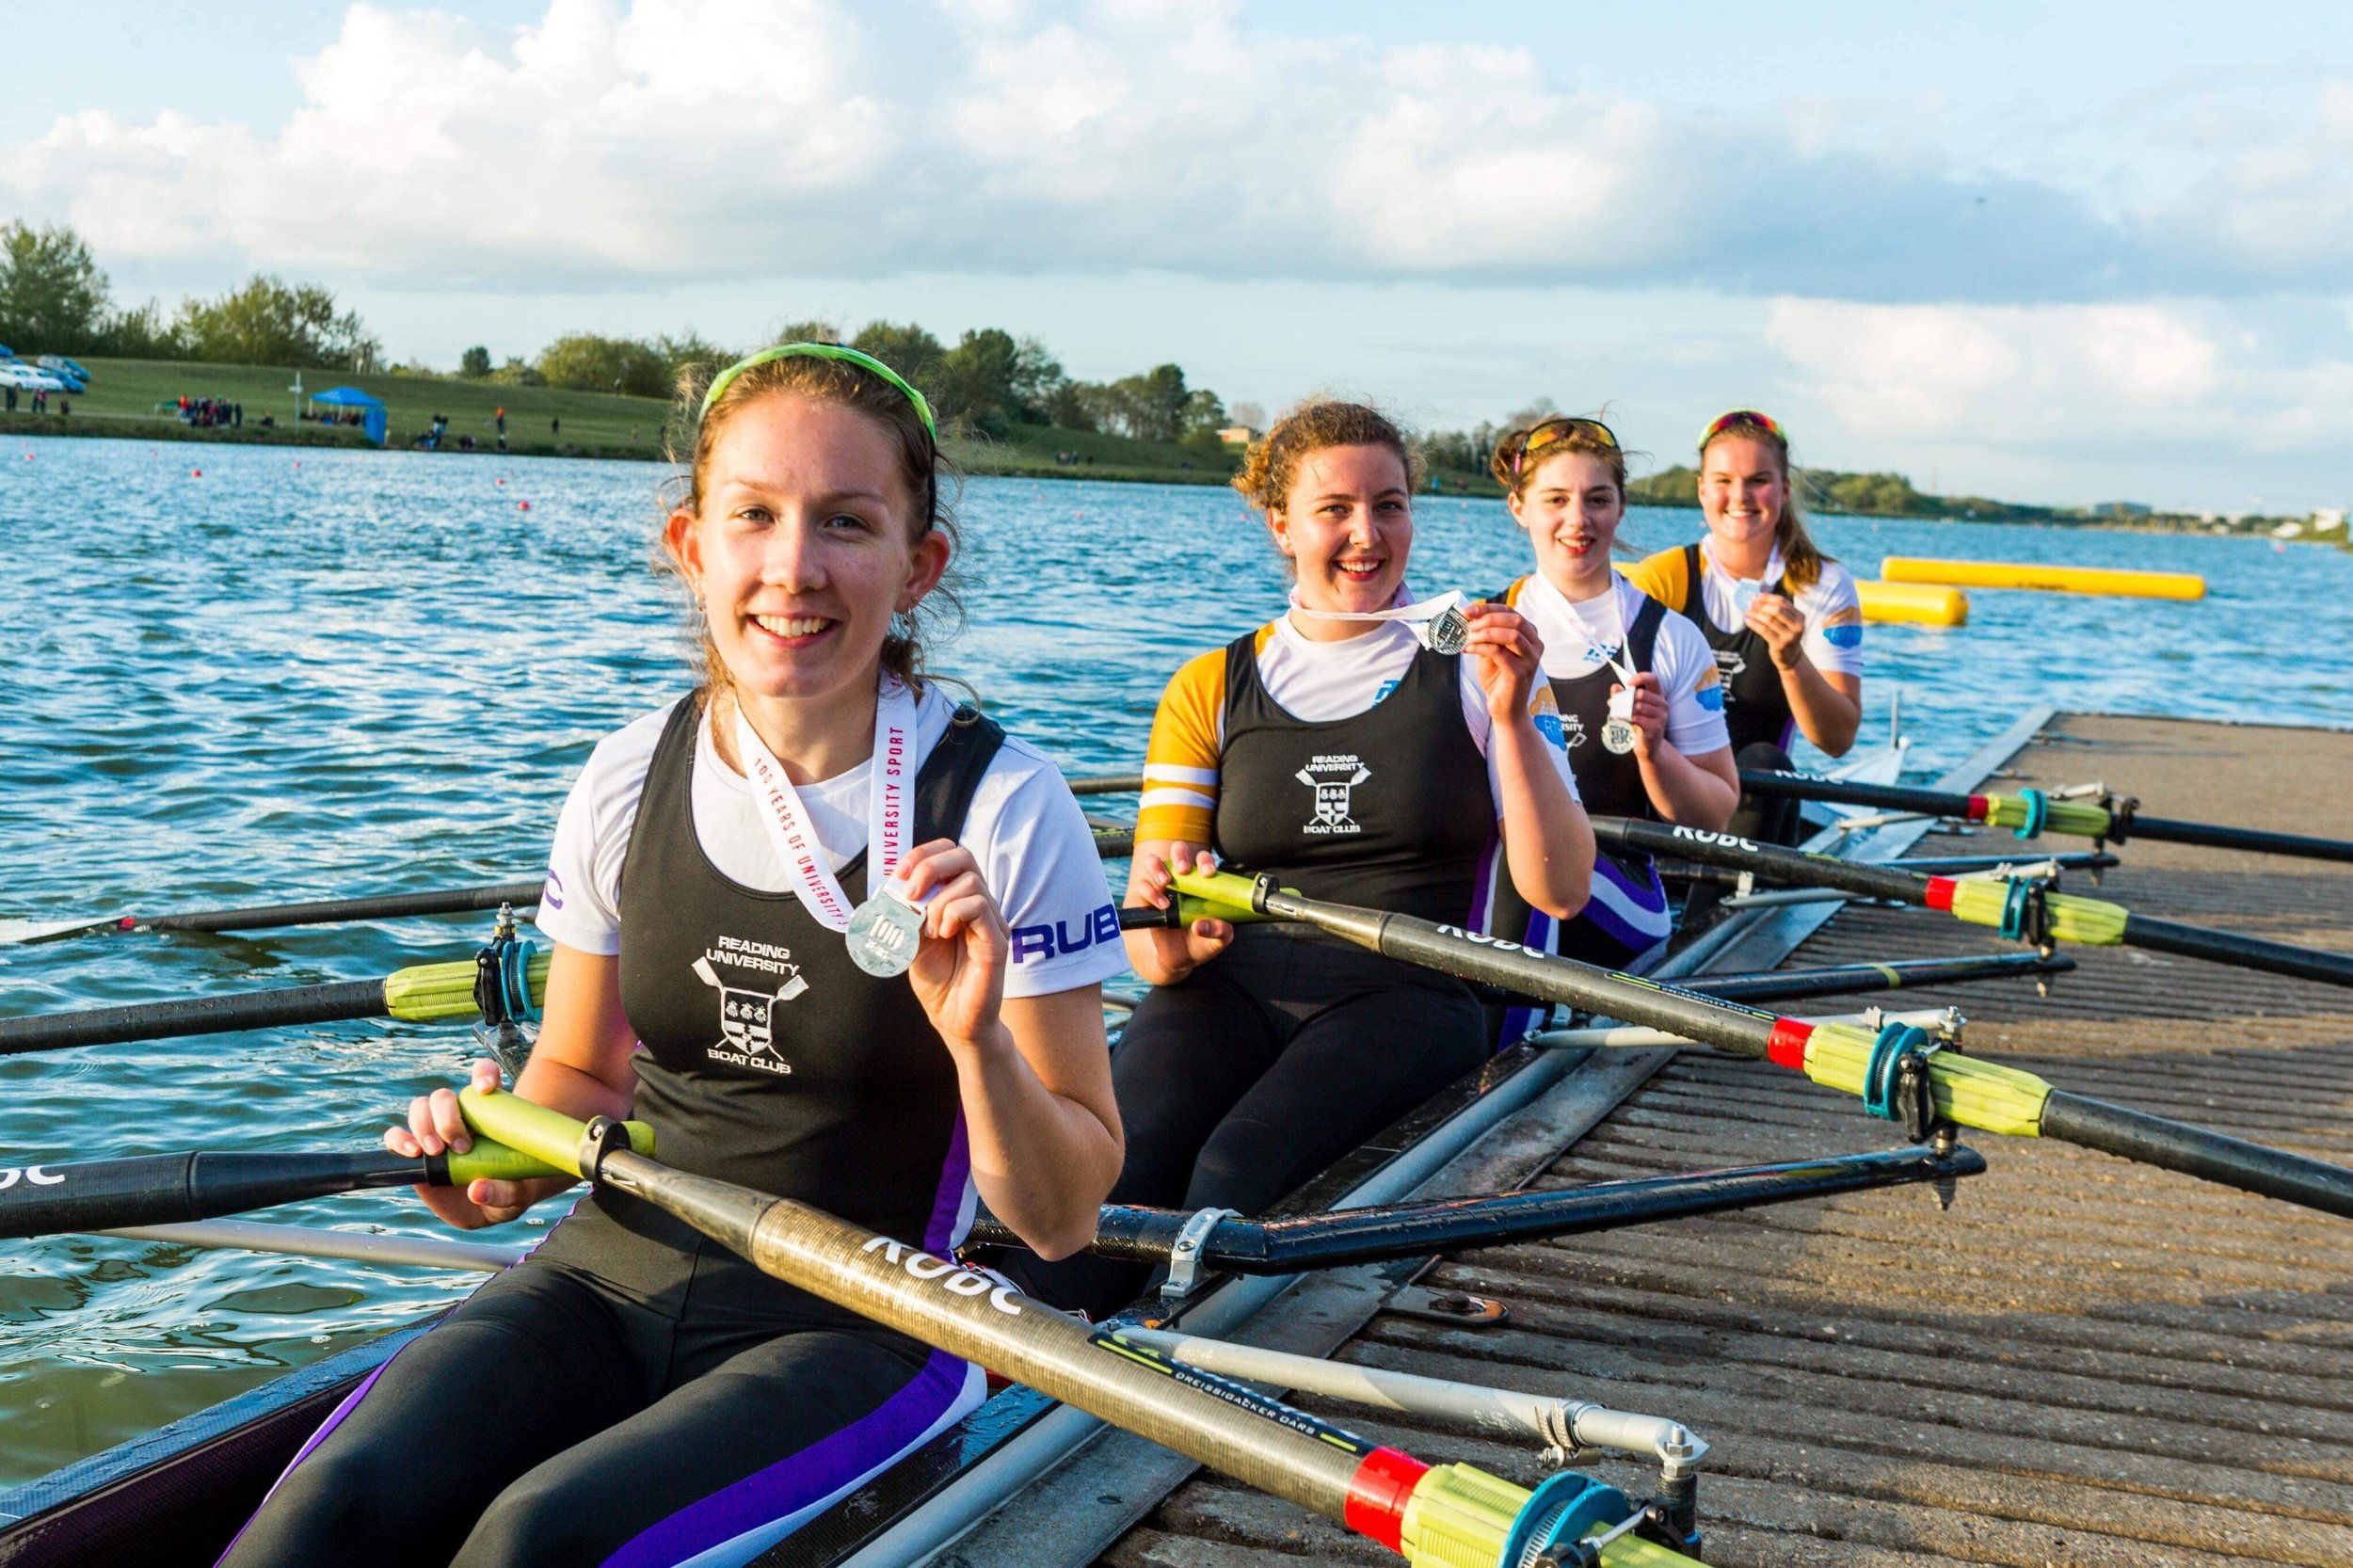 The Women's Intermediate A 4x: Emily, Maria, Charlotte and Kate - Silver medalists.